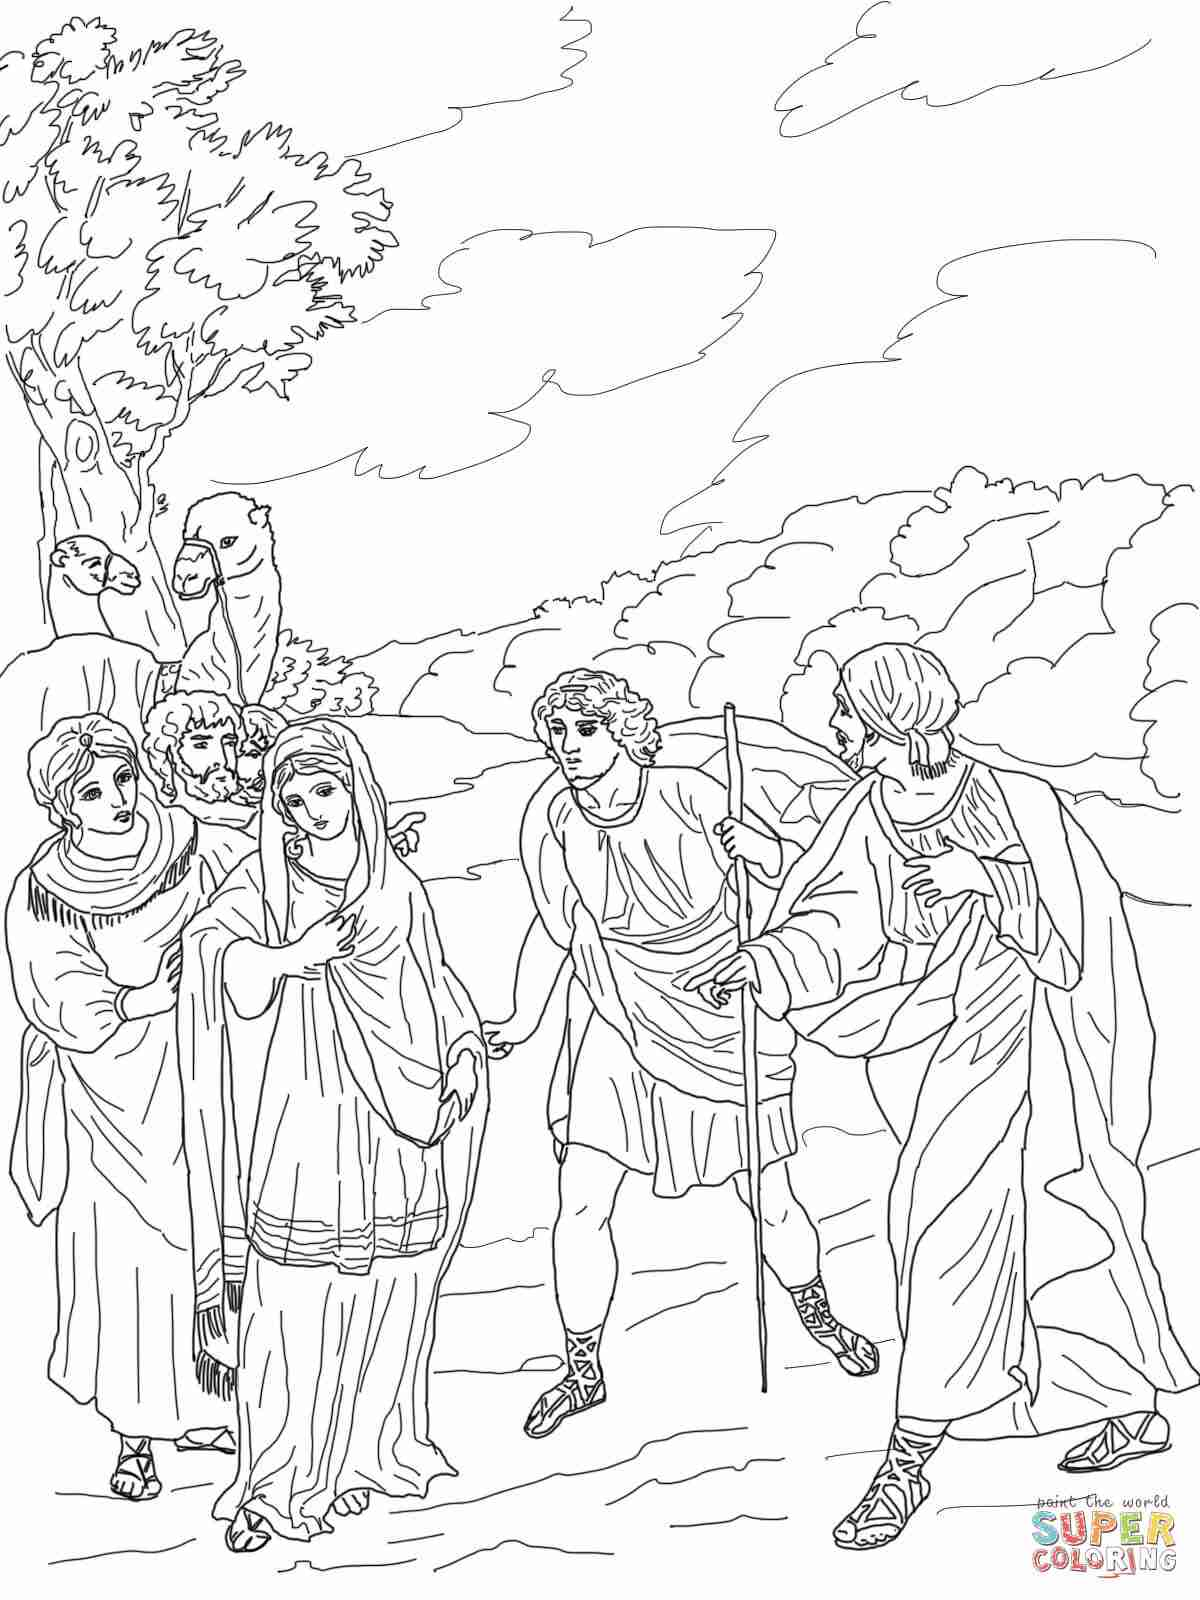 isaac and rebekah coloring pages 49 best isaac and rebekah images on pinterest sunday coloring pages and rebekah isaac